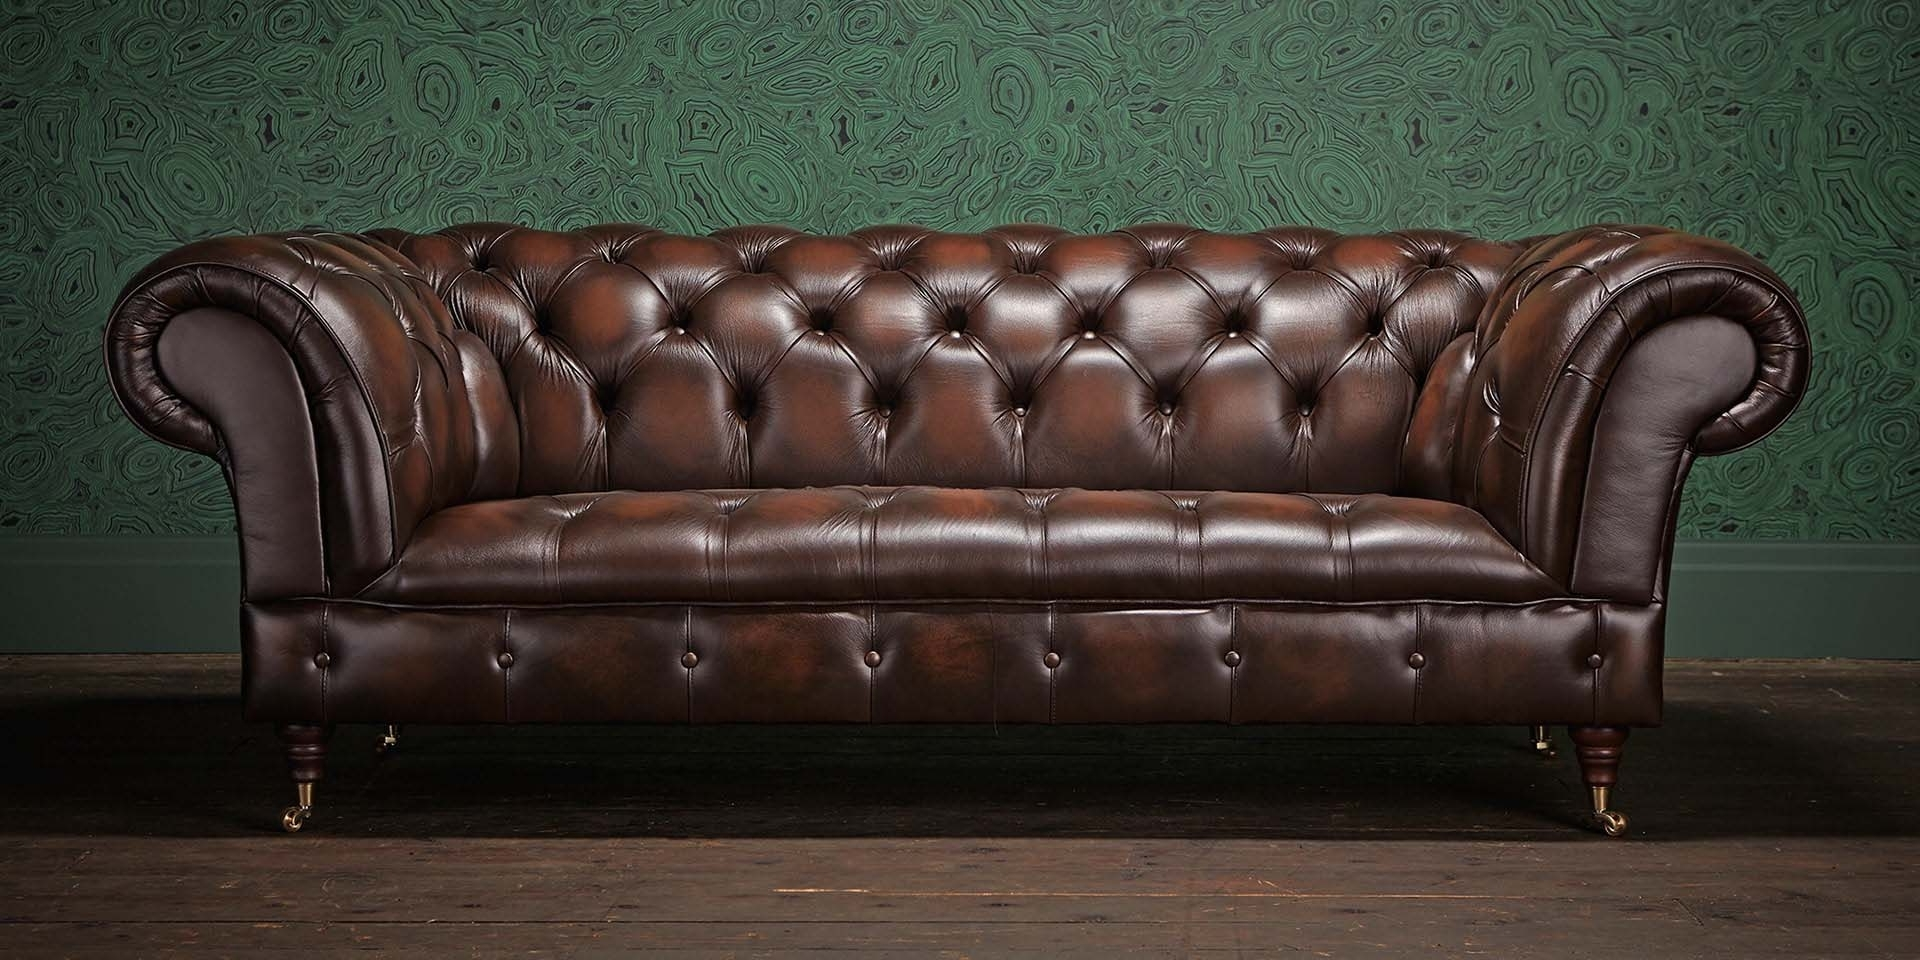 Chesterfield Sofas With Regard To Favorite 4 Vital Things To Look For In A Leather Chesterfield Sofa – Blogbeen (View 8 of 20)